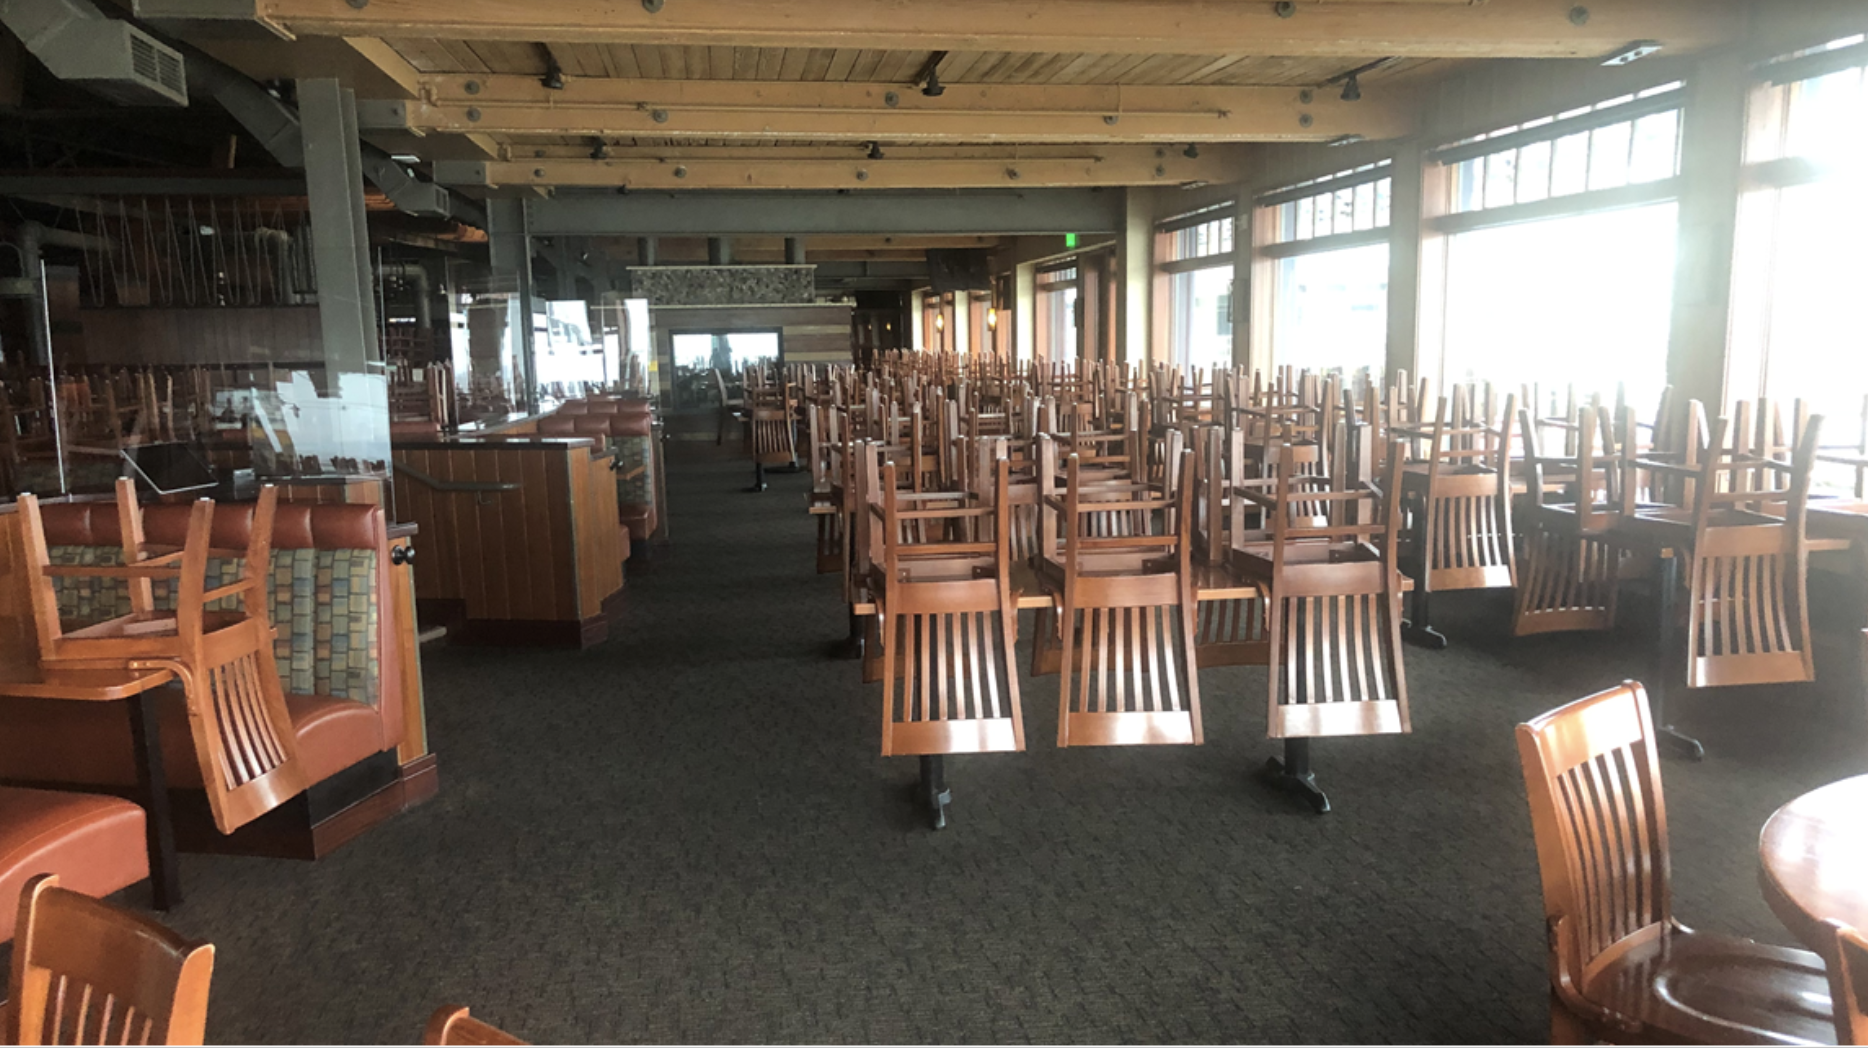 The empty dining room at Ivar's Acres of Clams, with chairs stacked upside down on tables